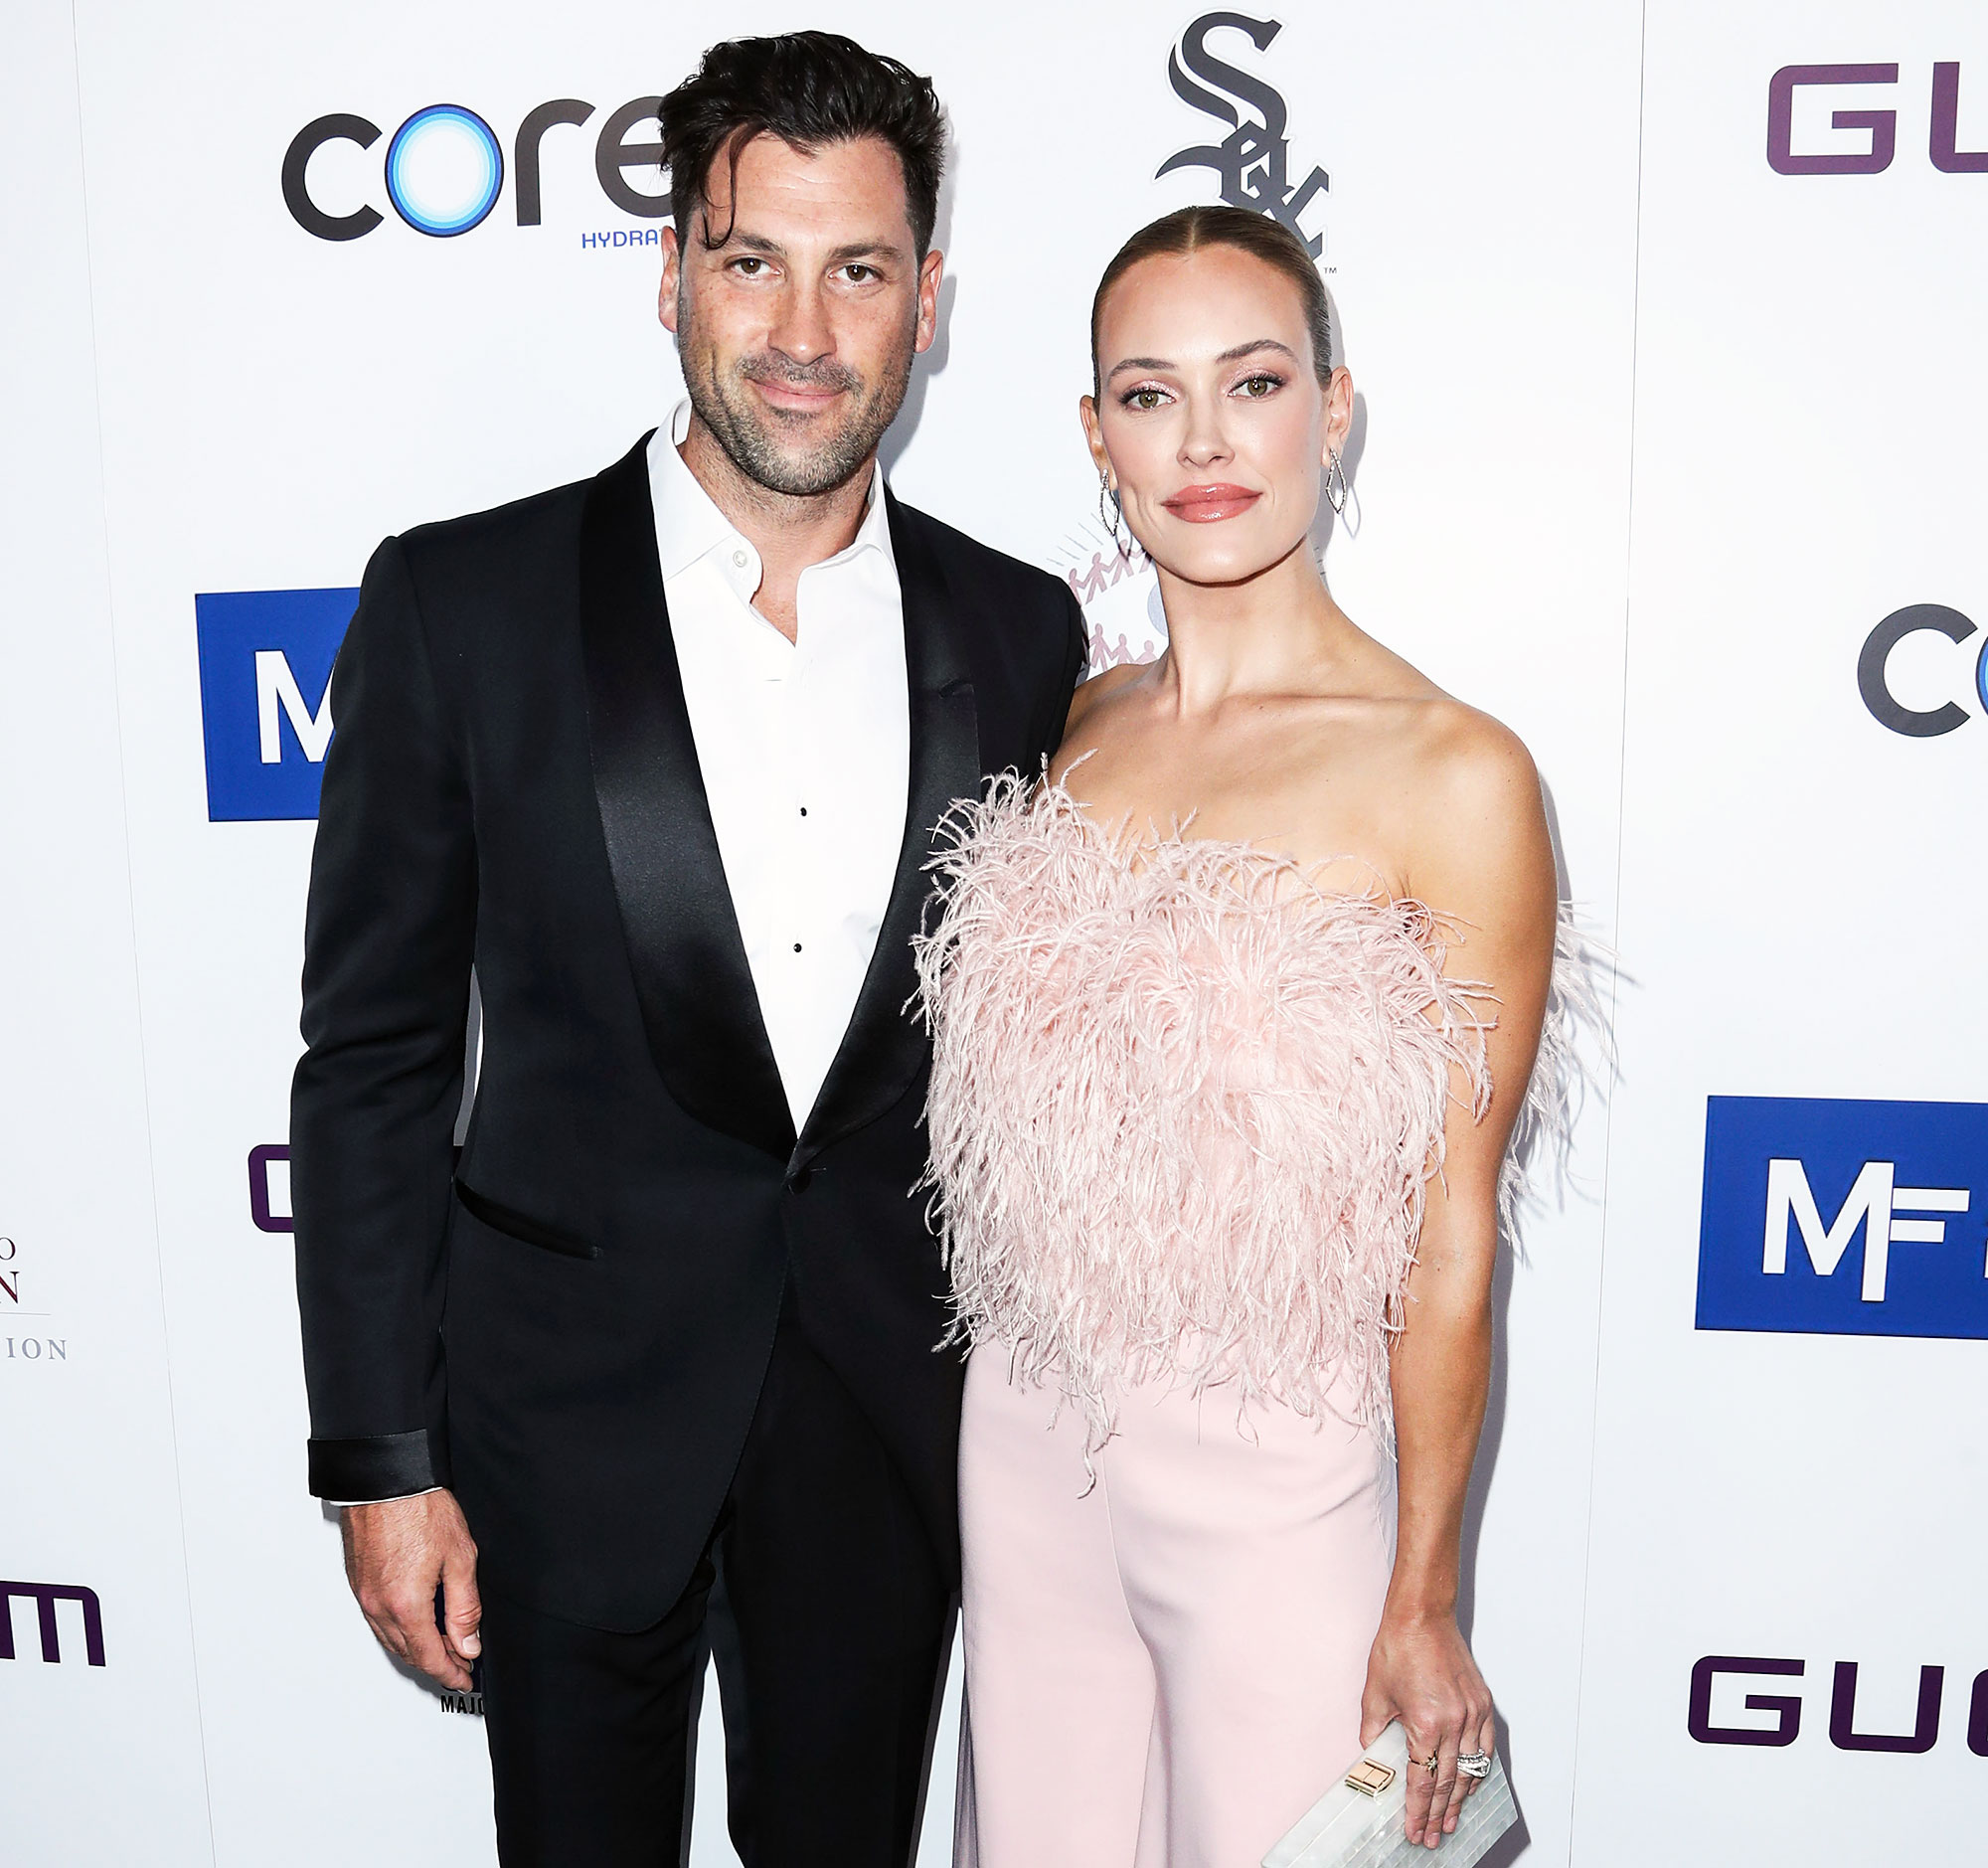 Peta Murgatroyd Trying to Have Baby Number 2 With Maksim Chmerkovskiy Before Next DWTS Season